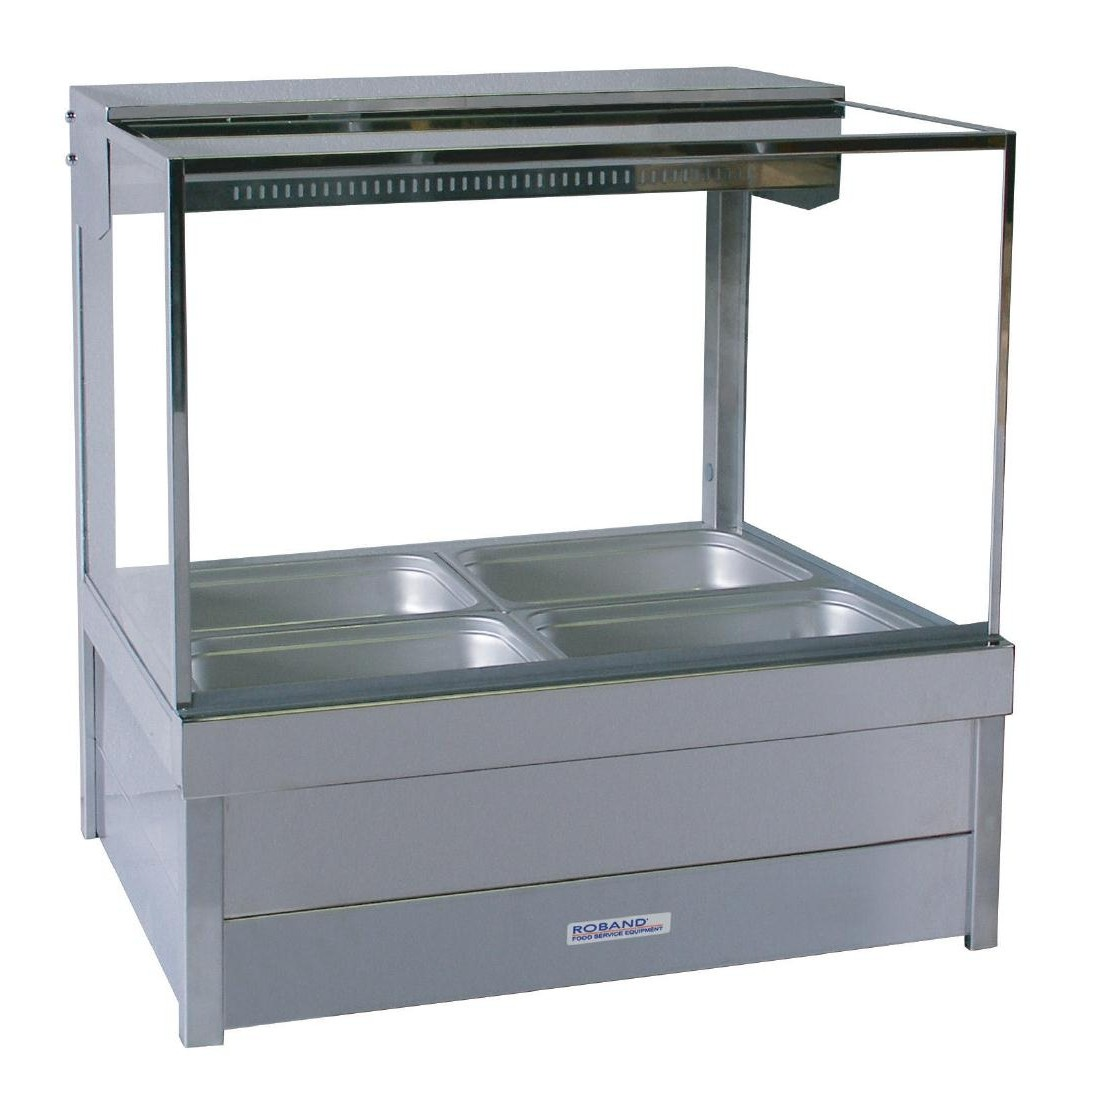 Roband S22 Hot Food Display Square Glass